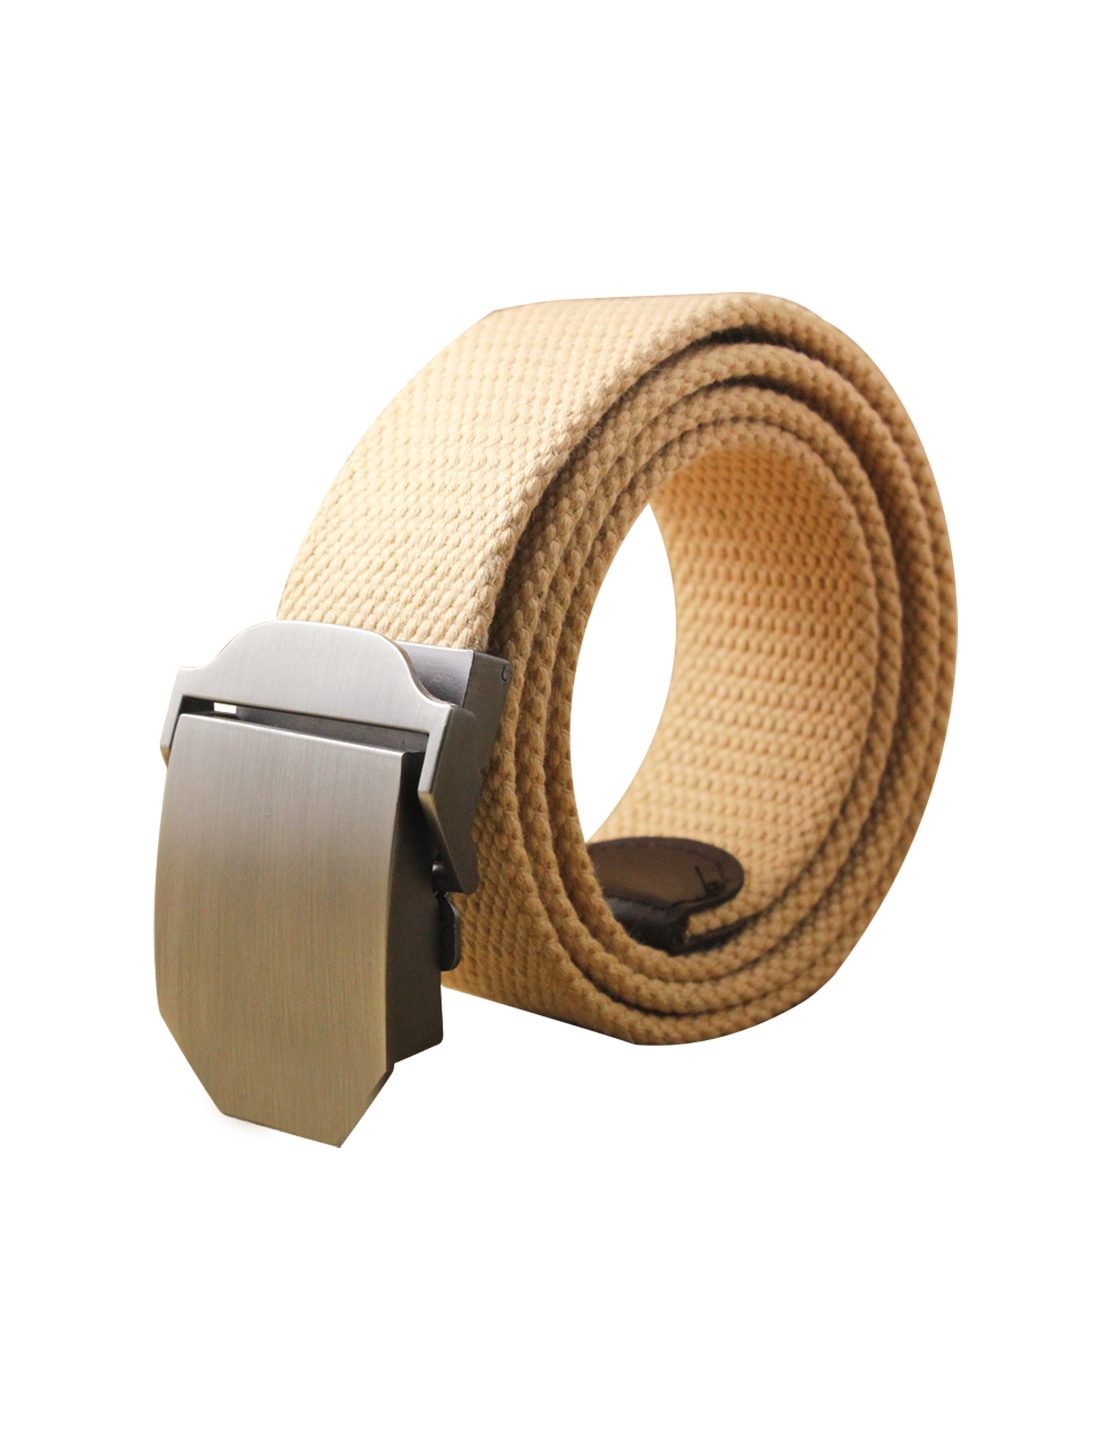 "Men Canvas Automatic Buckle Adjustable Holeless Outdoor Belt Width 1 1/2"" Khaki"